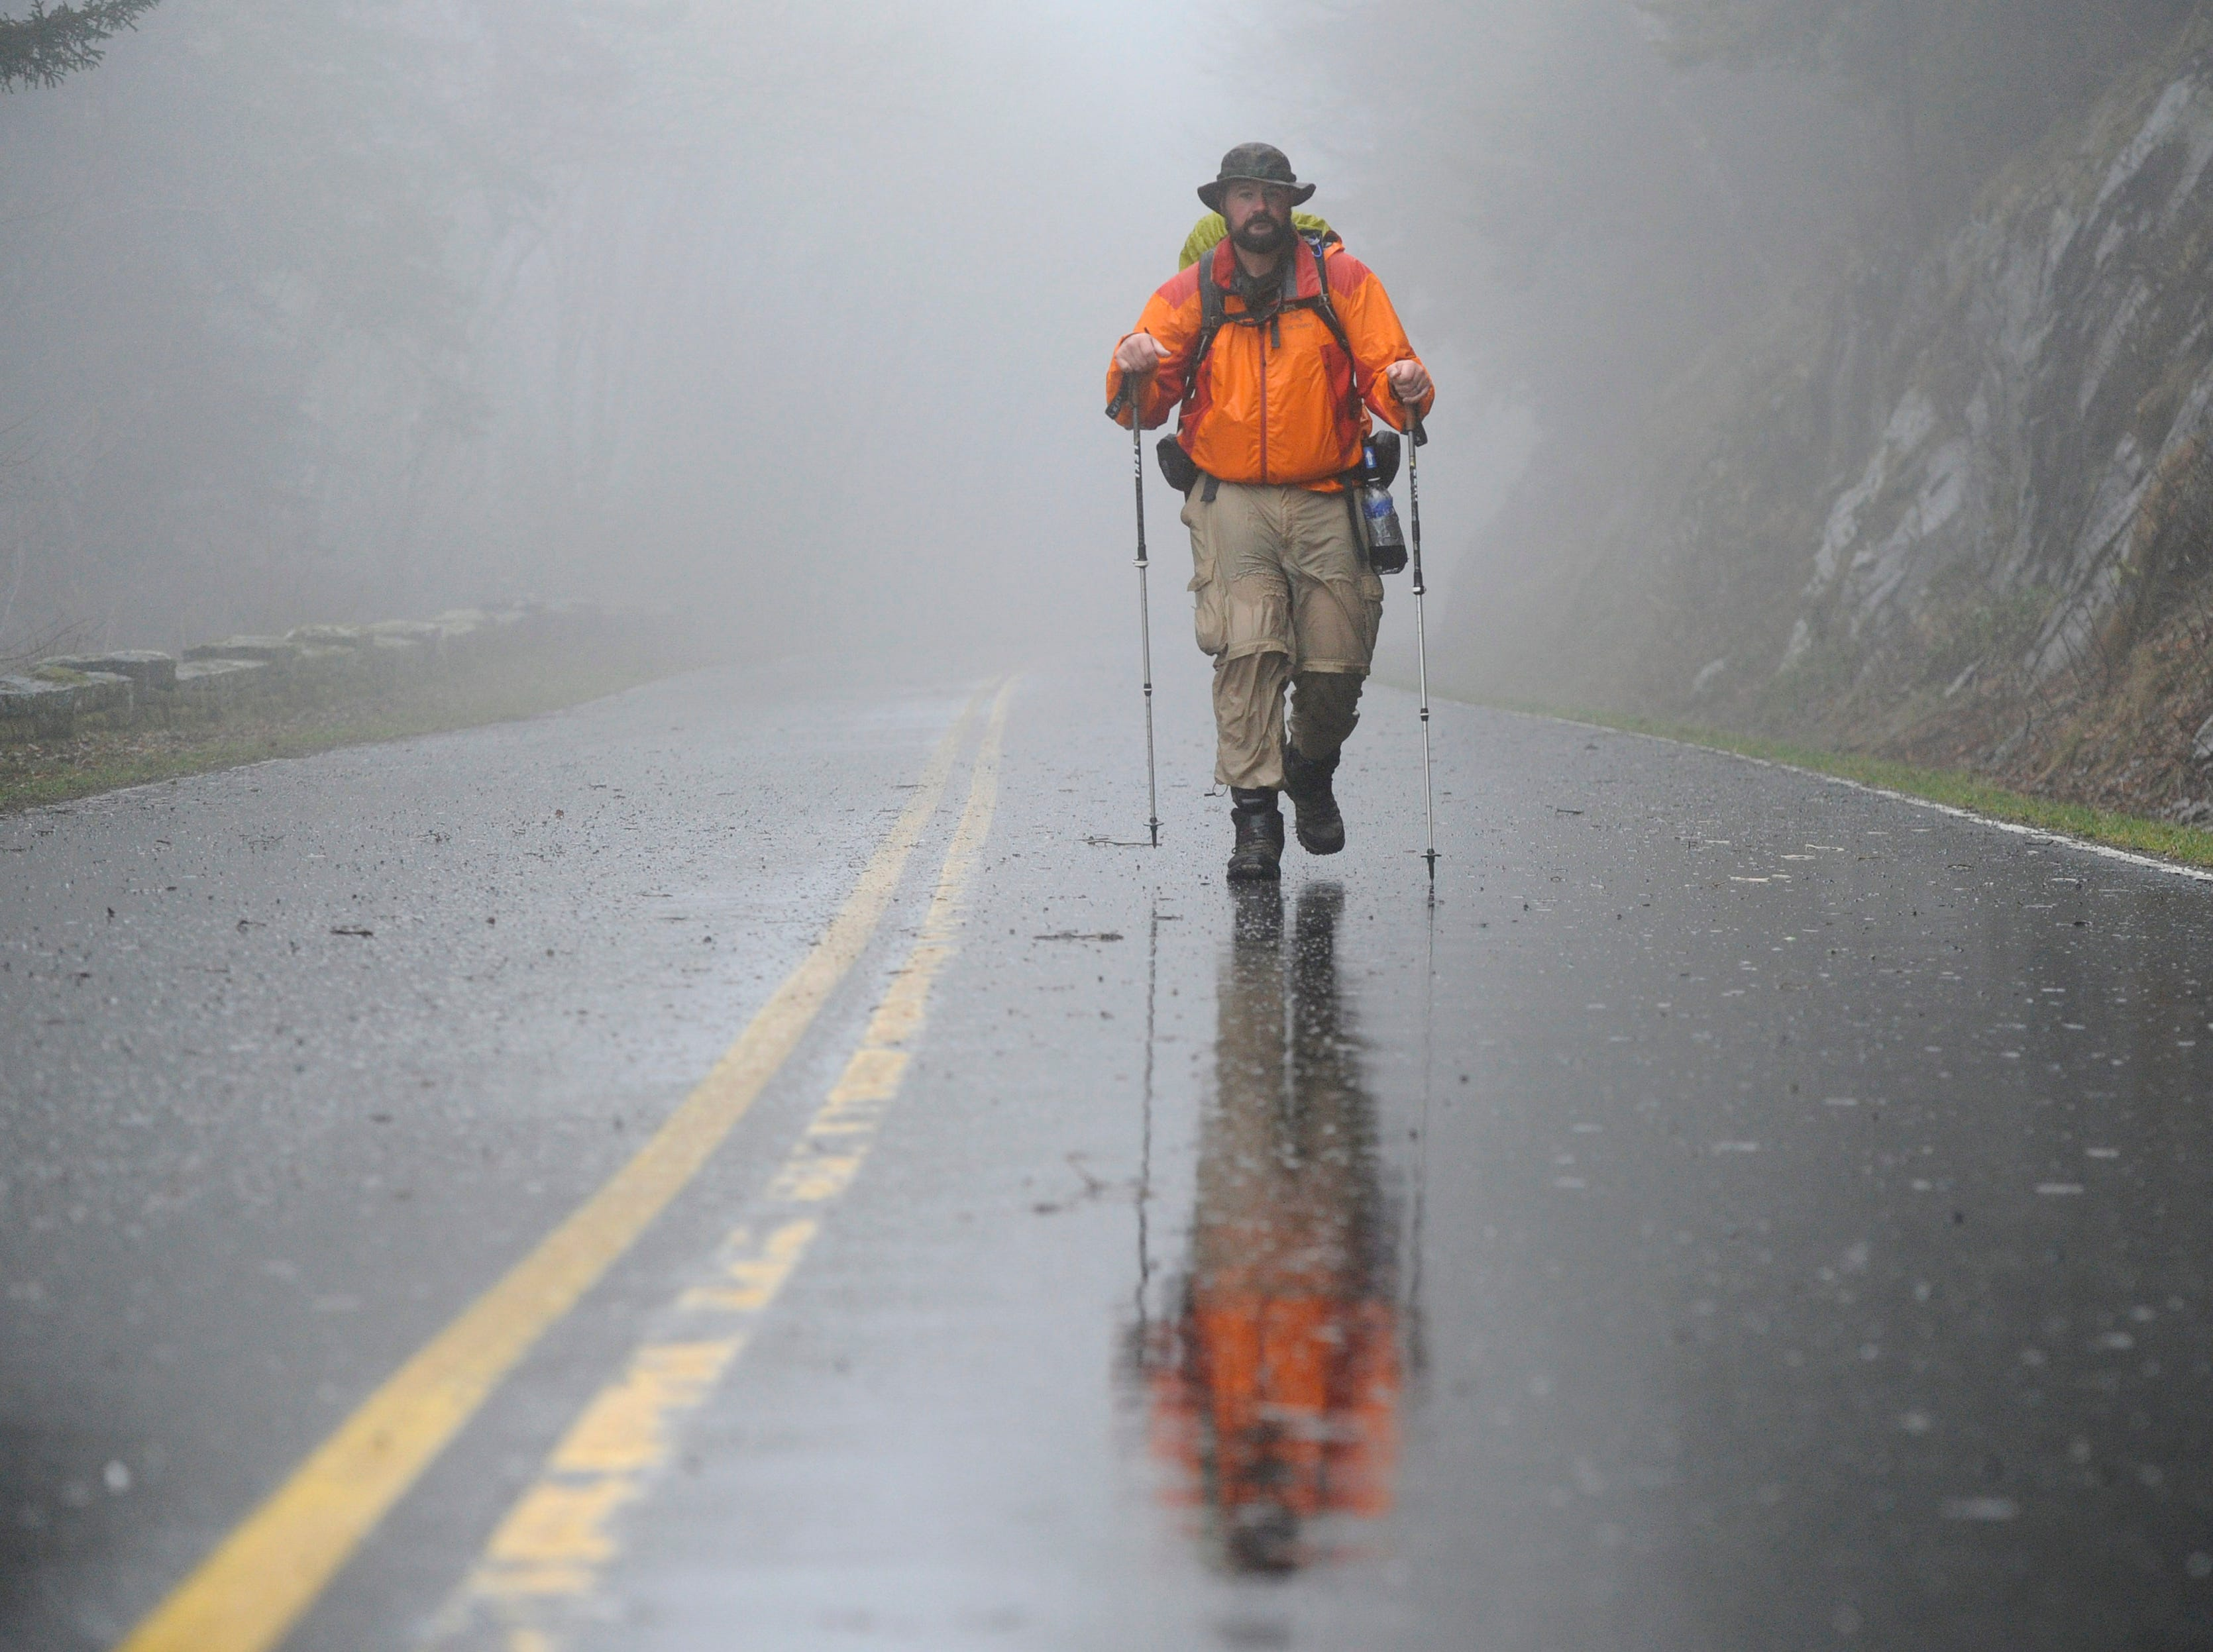 Jeff Fowler hikes down Clingmans Dome Access Road towards Newfound Gap while detouring from the Appalachian Trail due to heavy rains on Thursday, March 19, 2015. Fowler and friend, Don Nguyen, both ex-Marines, are thru-hiking the AT to raise money for Higher Ground, a non-profit rehabilitation program for military veterans. (ADAM LAU/NEWS SENTINEL)